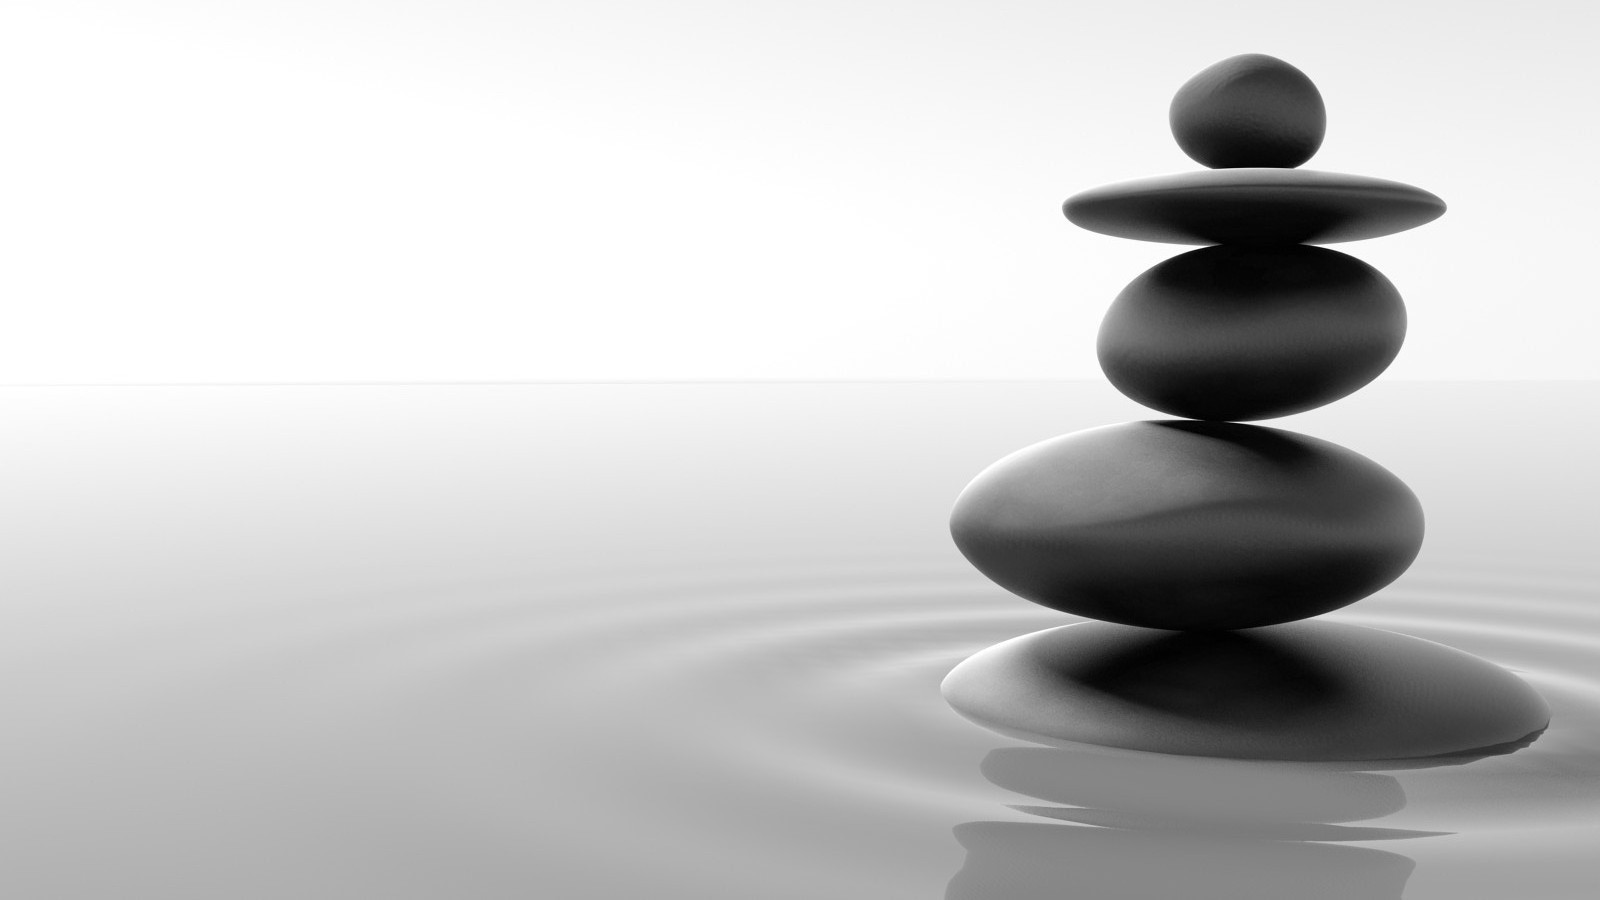 Zen Wallpaper wallpaper Zen Wallpaper hd wallpaper background 1600x900